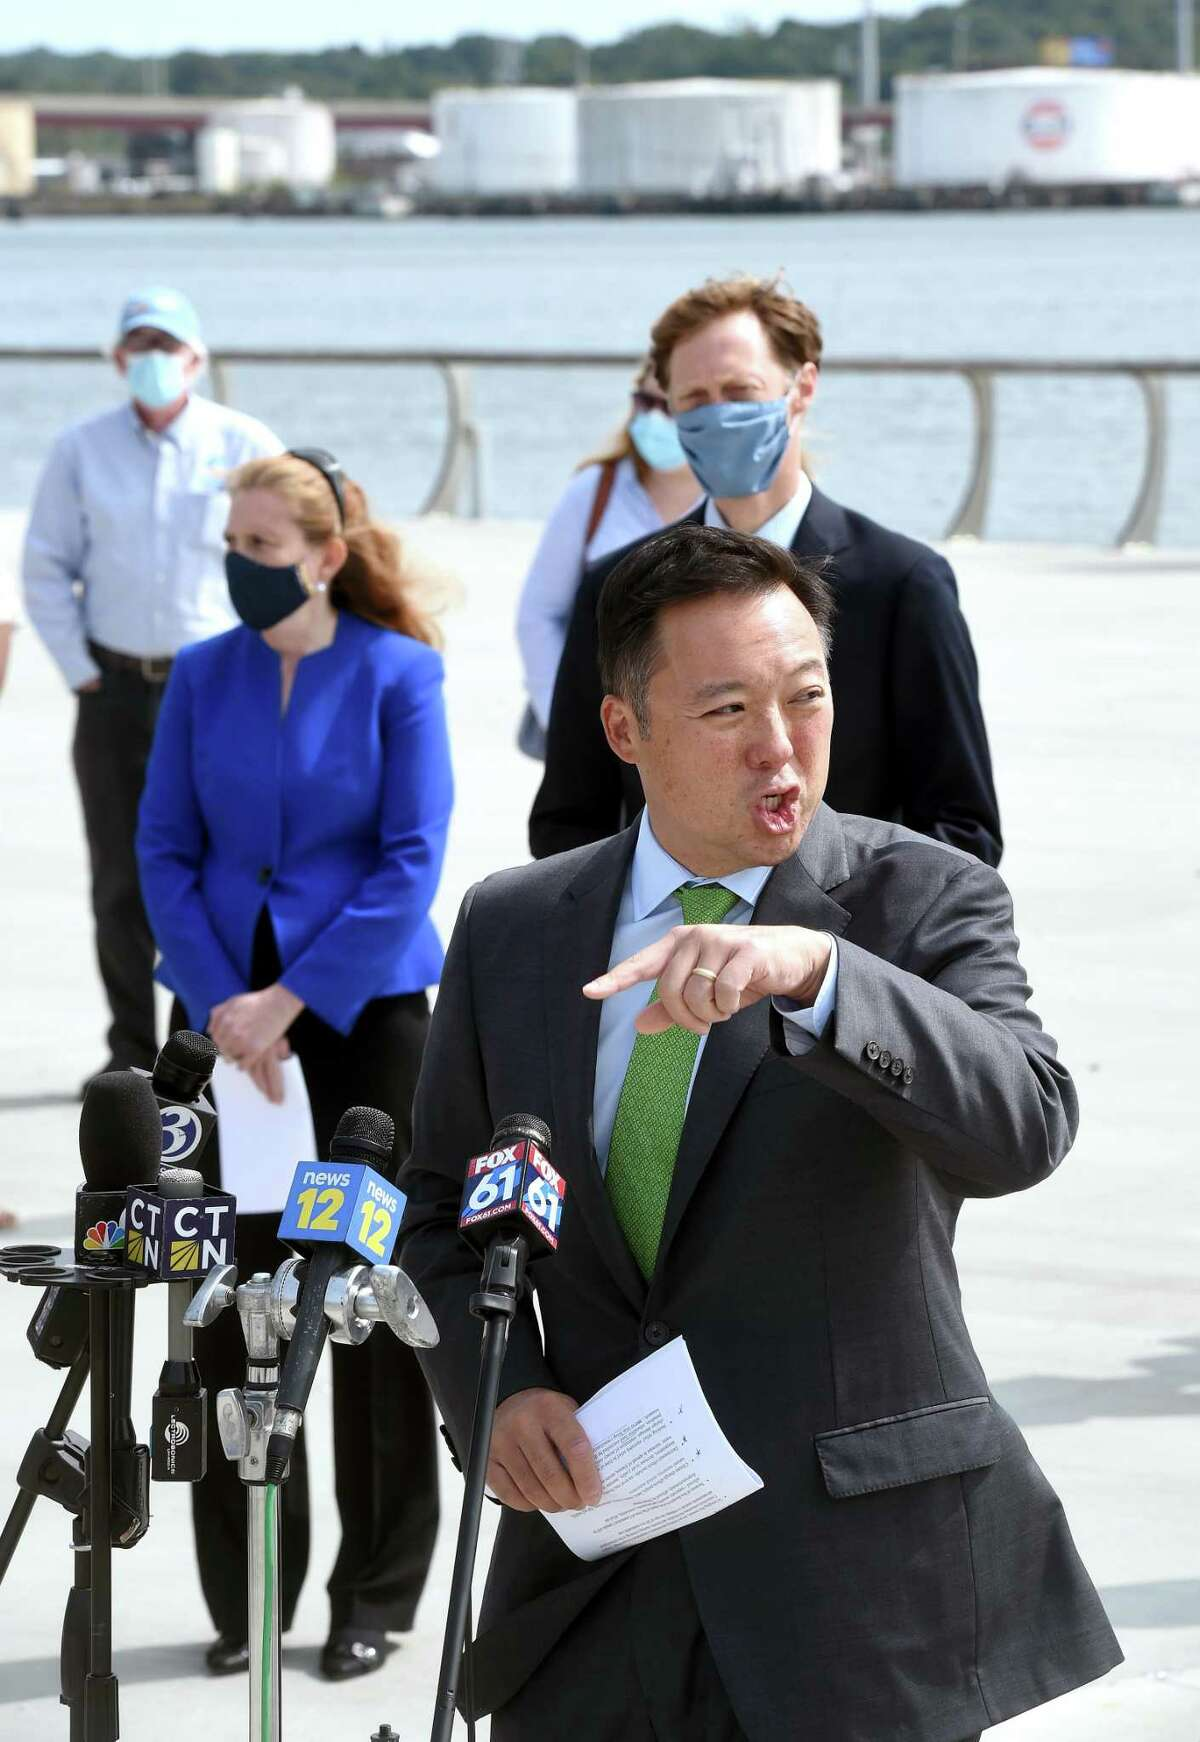 Connecticut Attorney General William Tong announces a suit against ExxonMobil concerning its alleged deception relating to information about climate change, outside the Canal Dock Boathouse in New Haven Sept. 14, 2020.